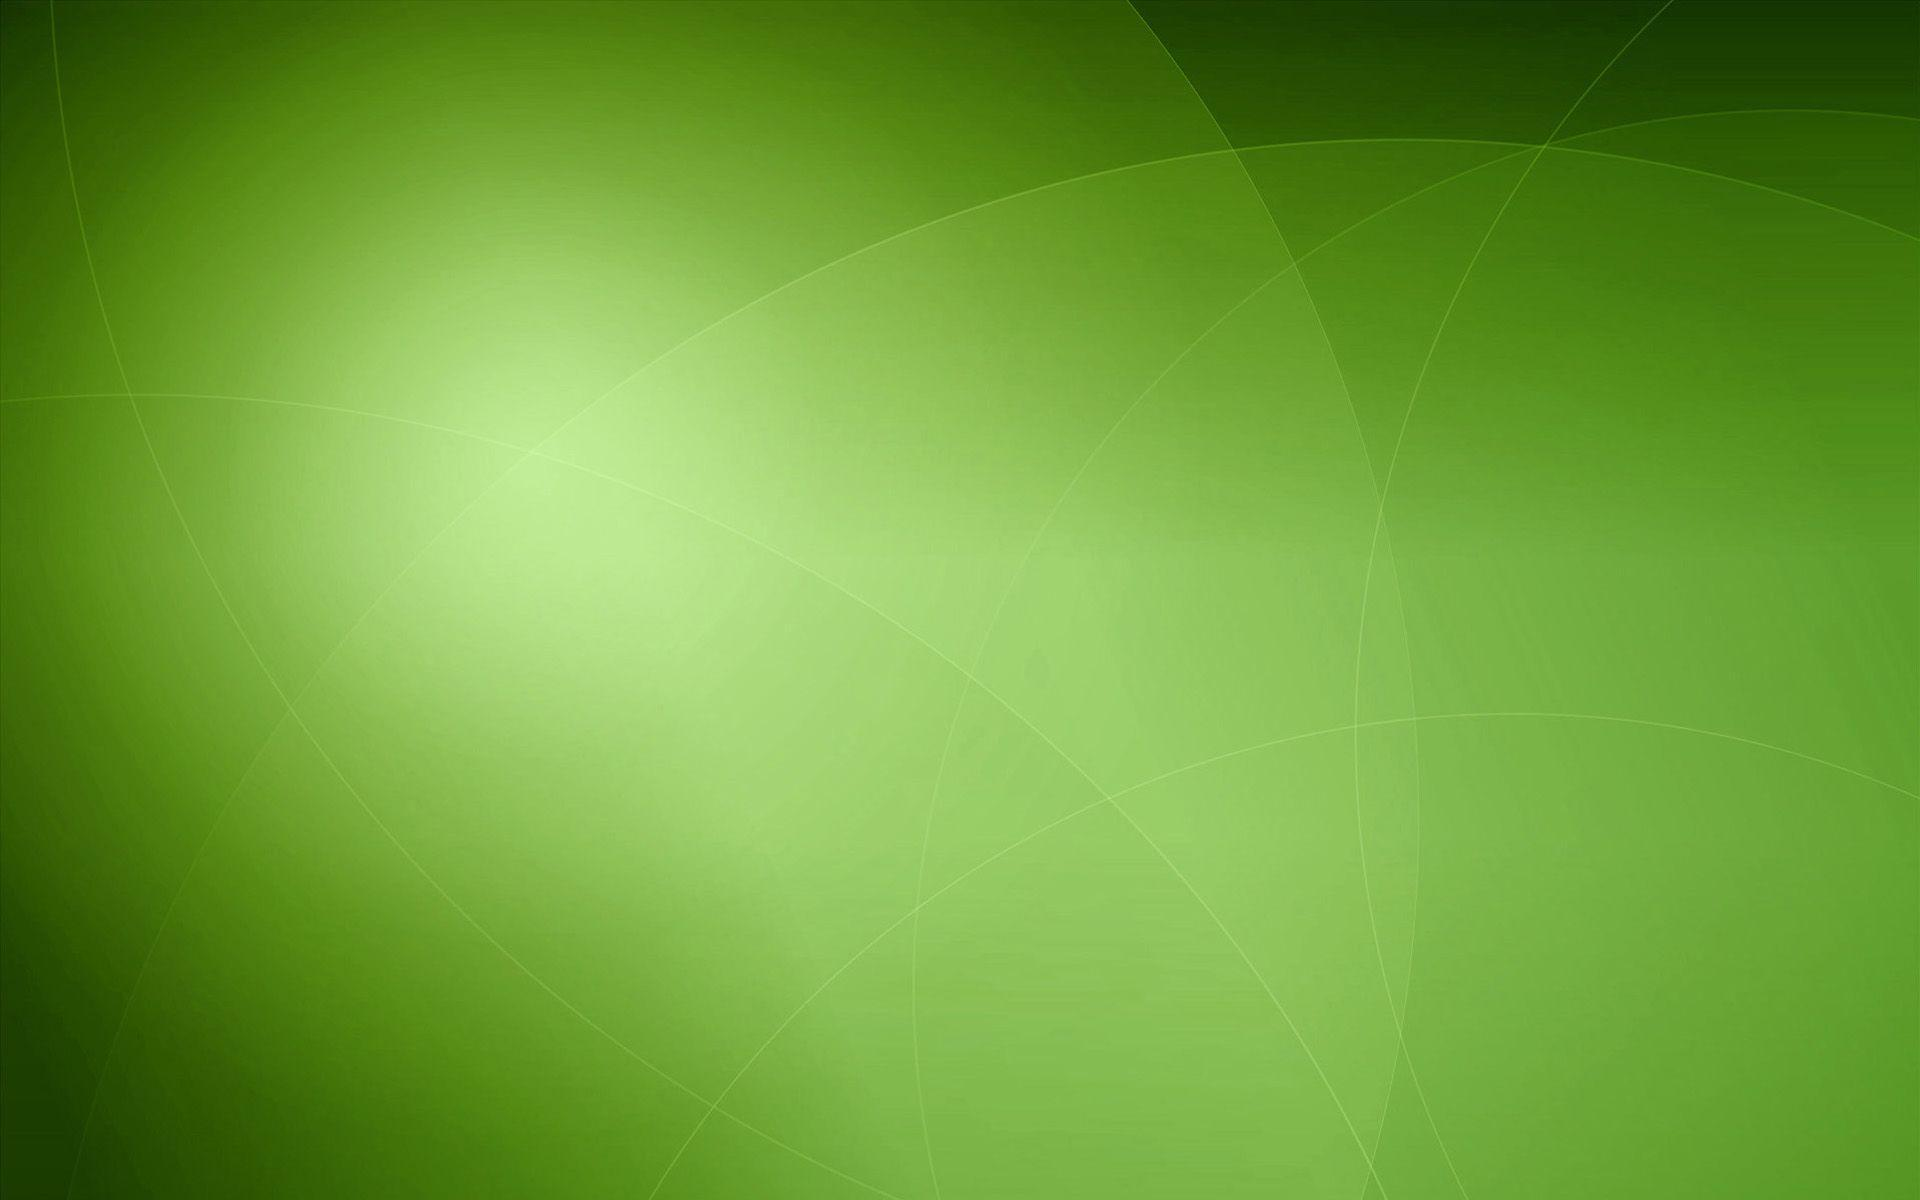 Green Backgrounds Wallpapers Wallpaper Cave